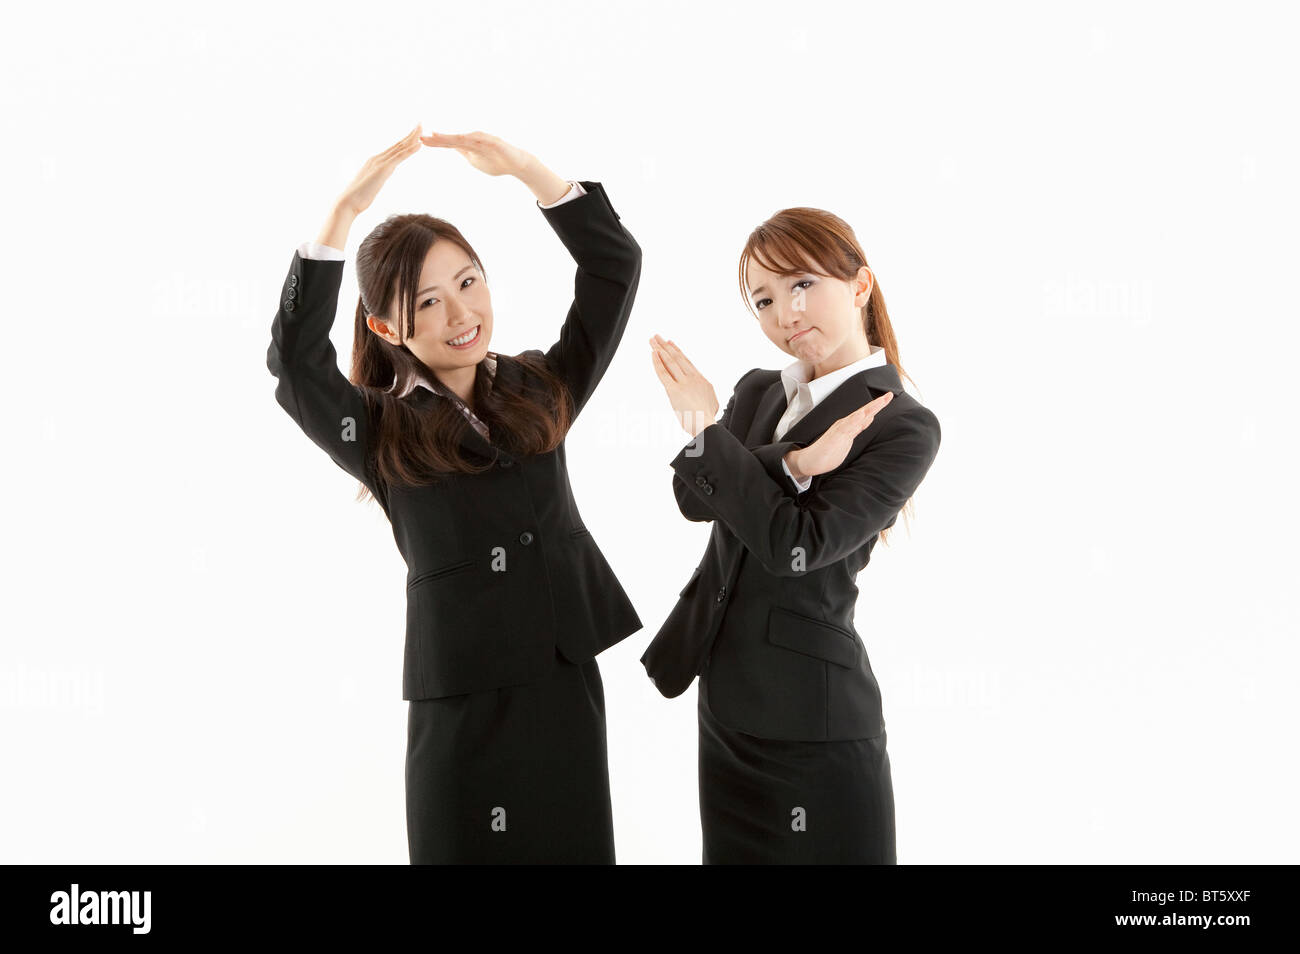 Two businesswomen making circle and cross shape with hands - Stock Image